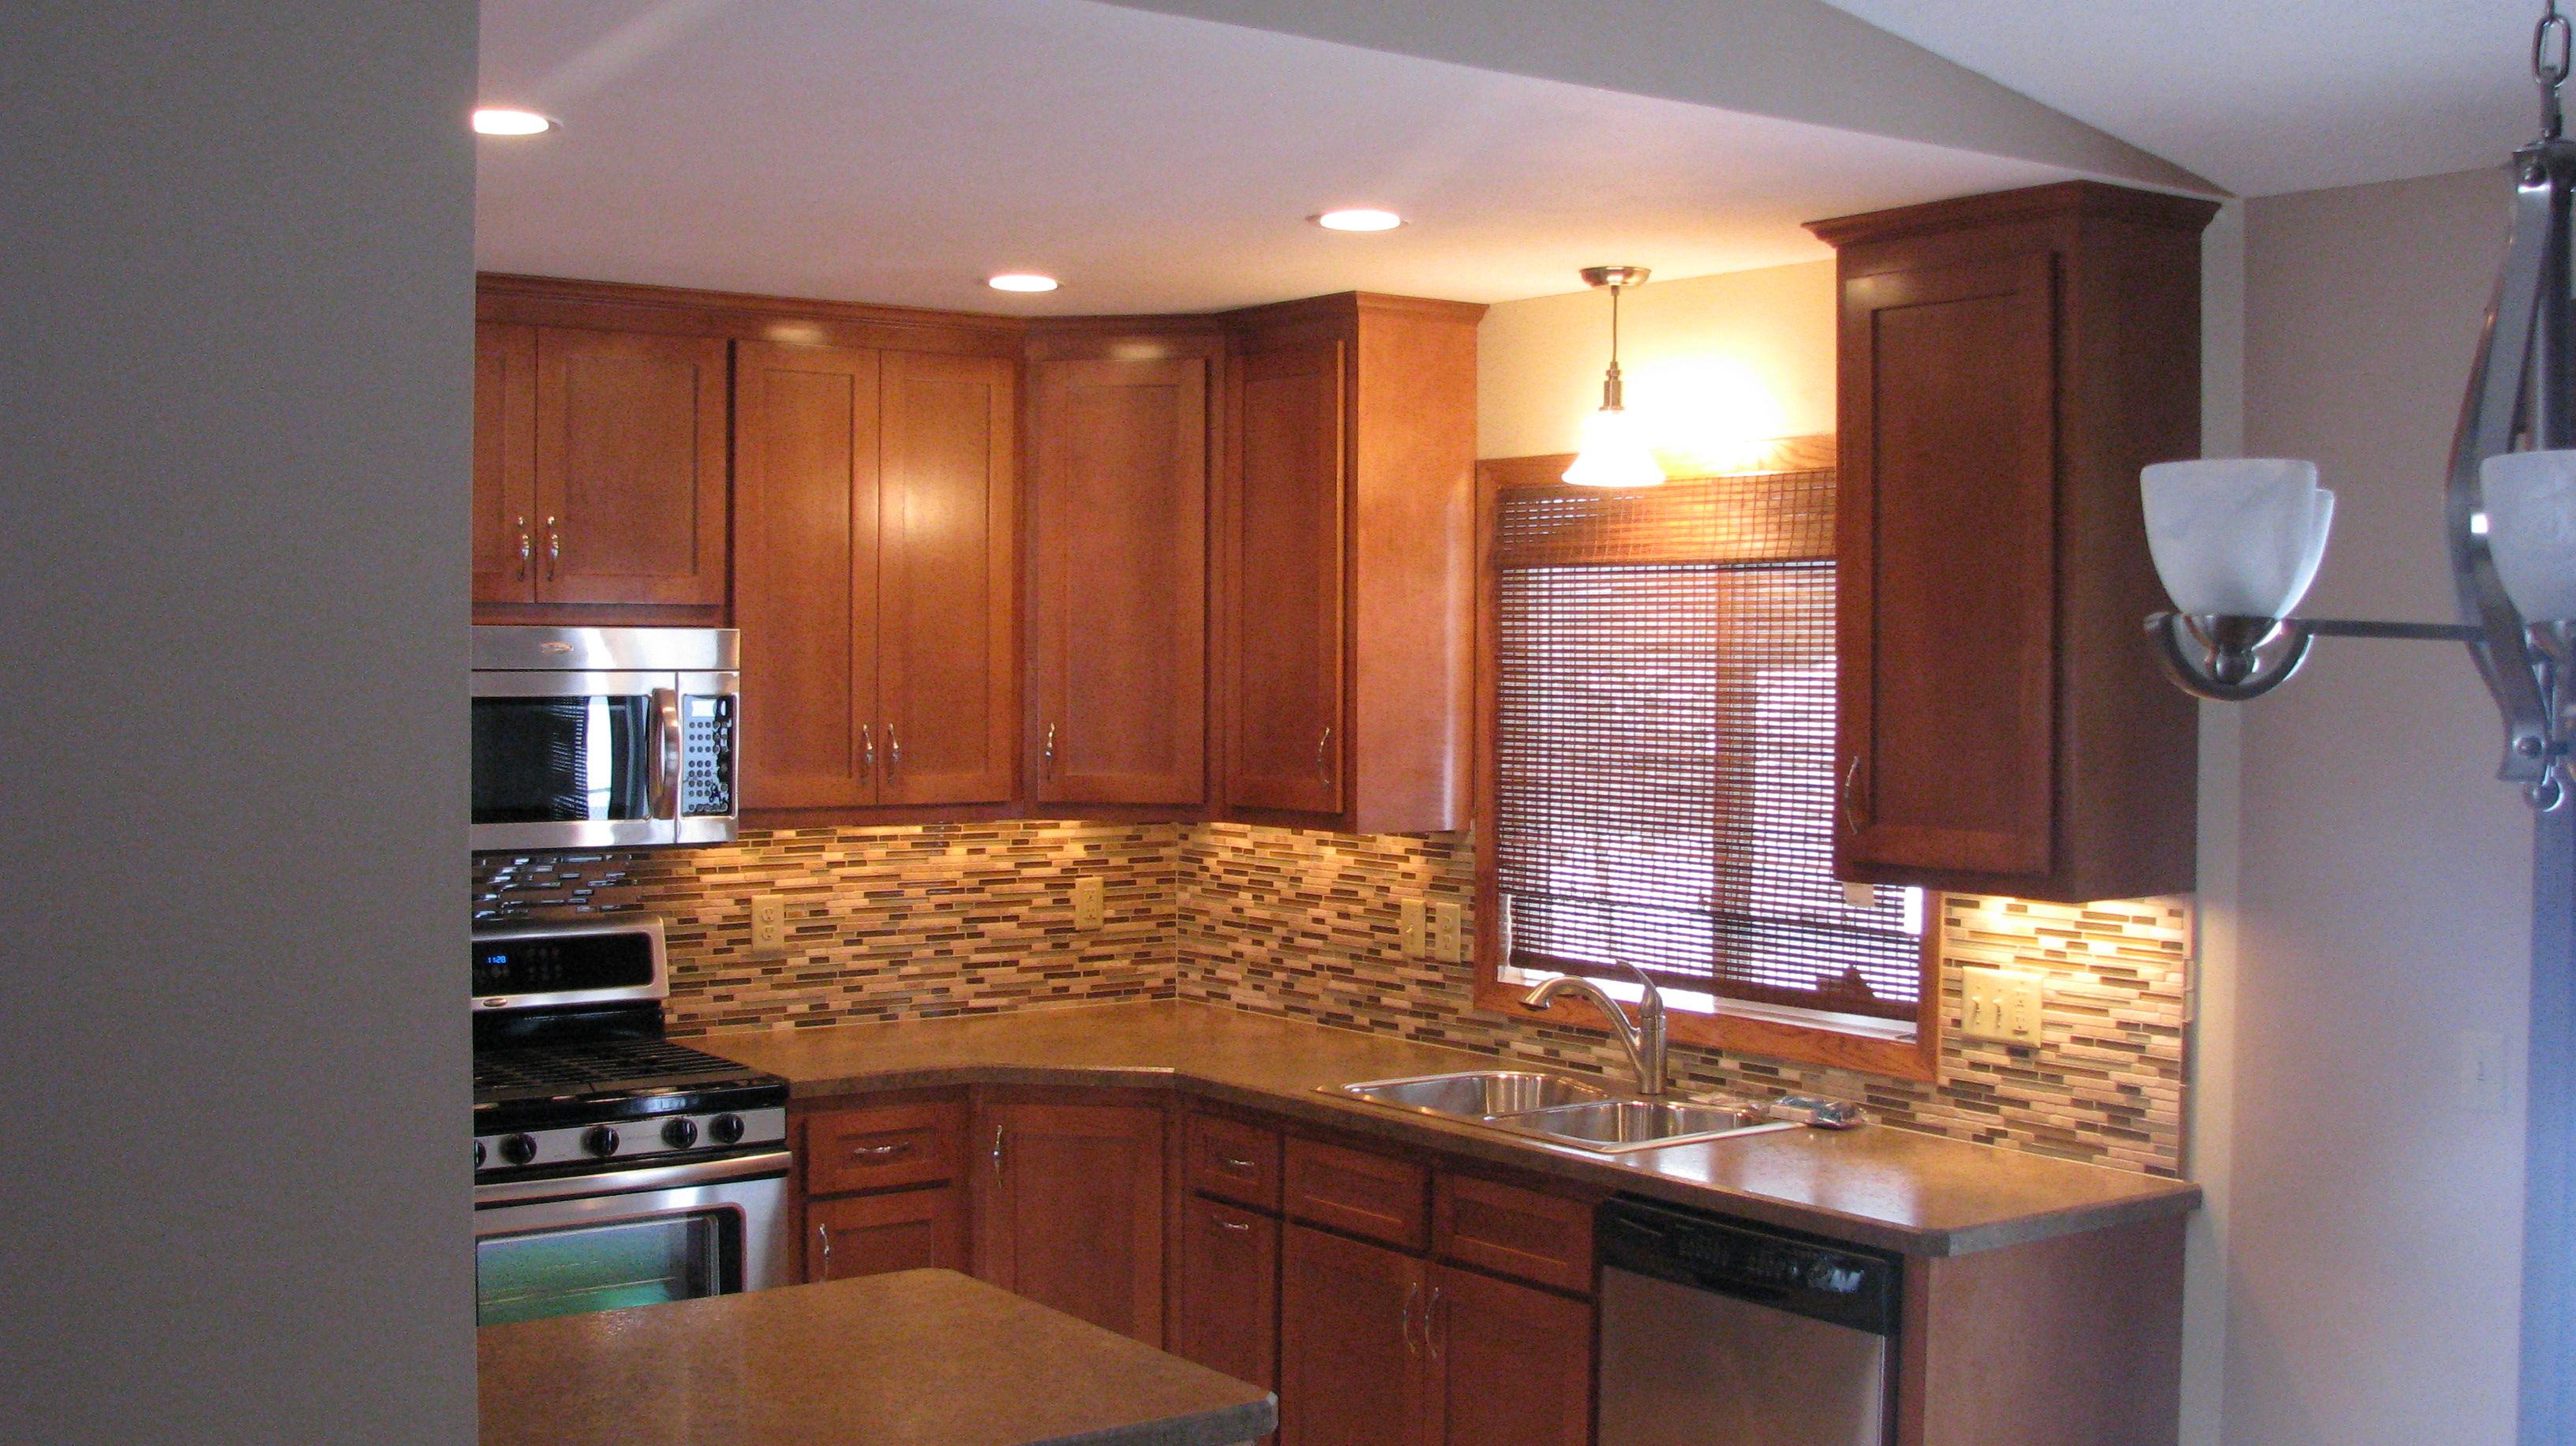 Remodeling | Kitchen Remodeling Minneapolis | Bathroom Remodeling